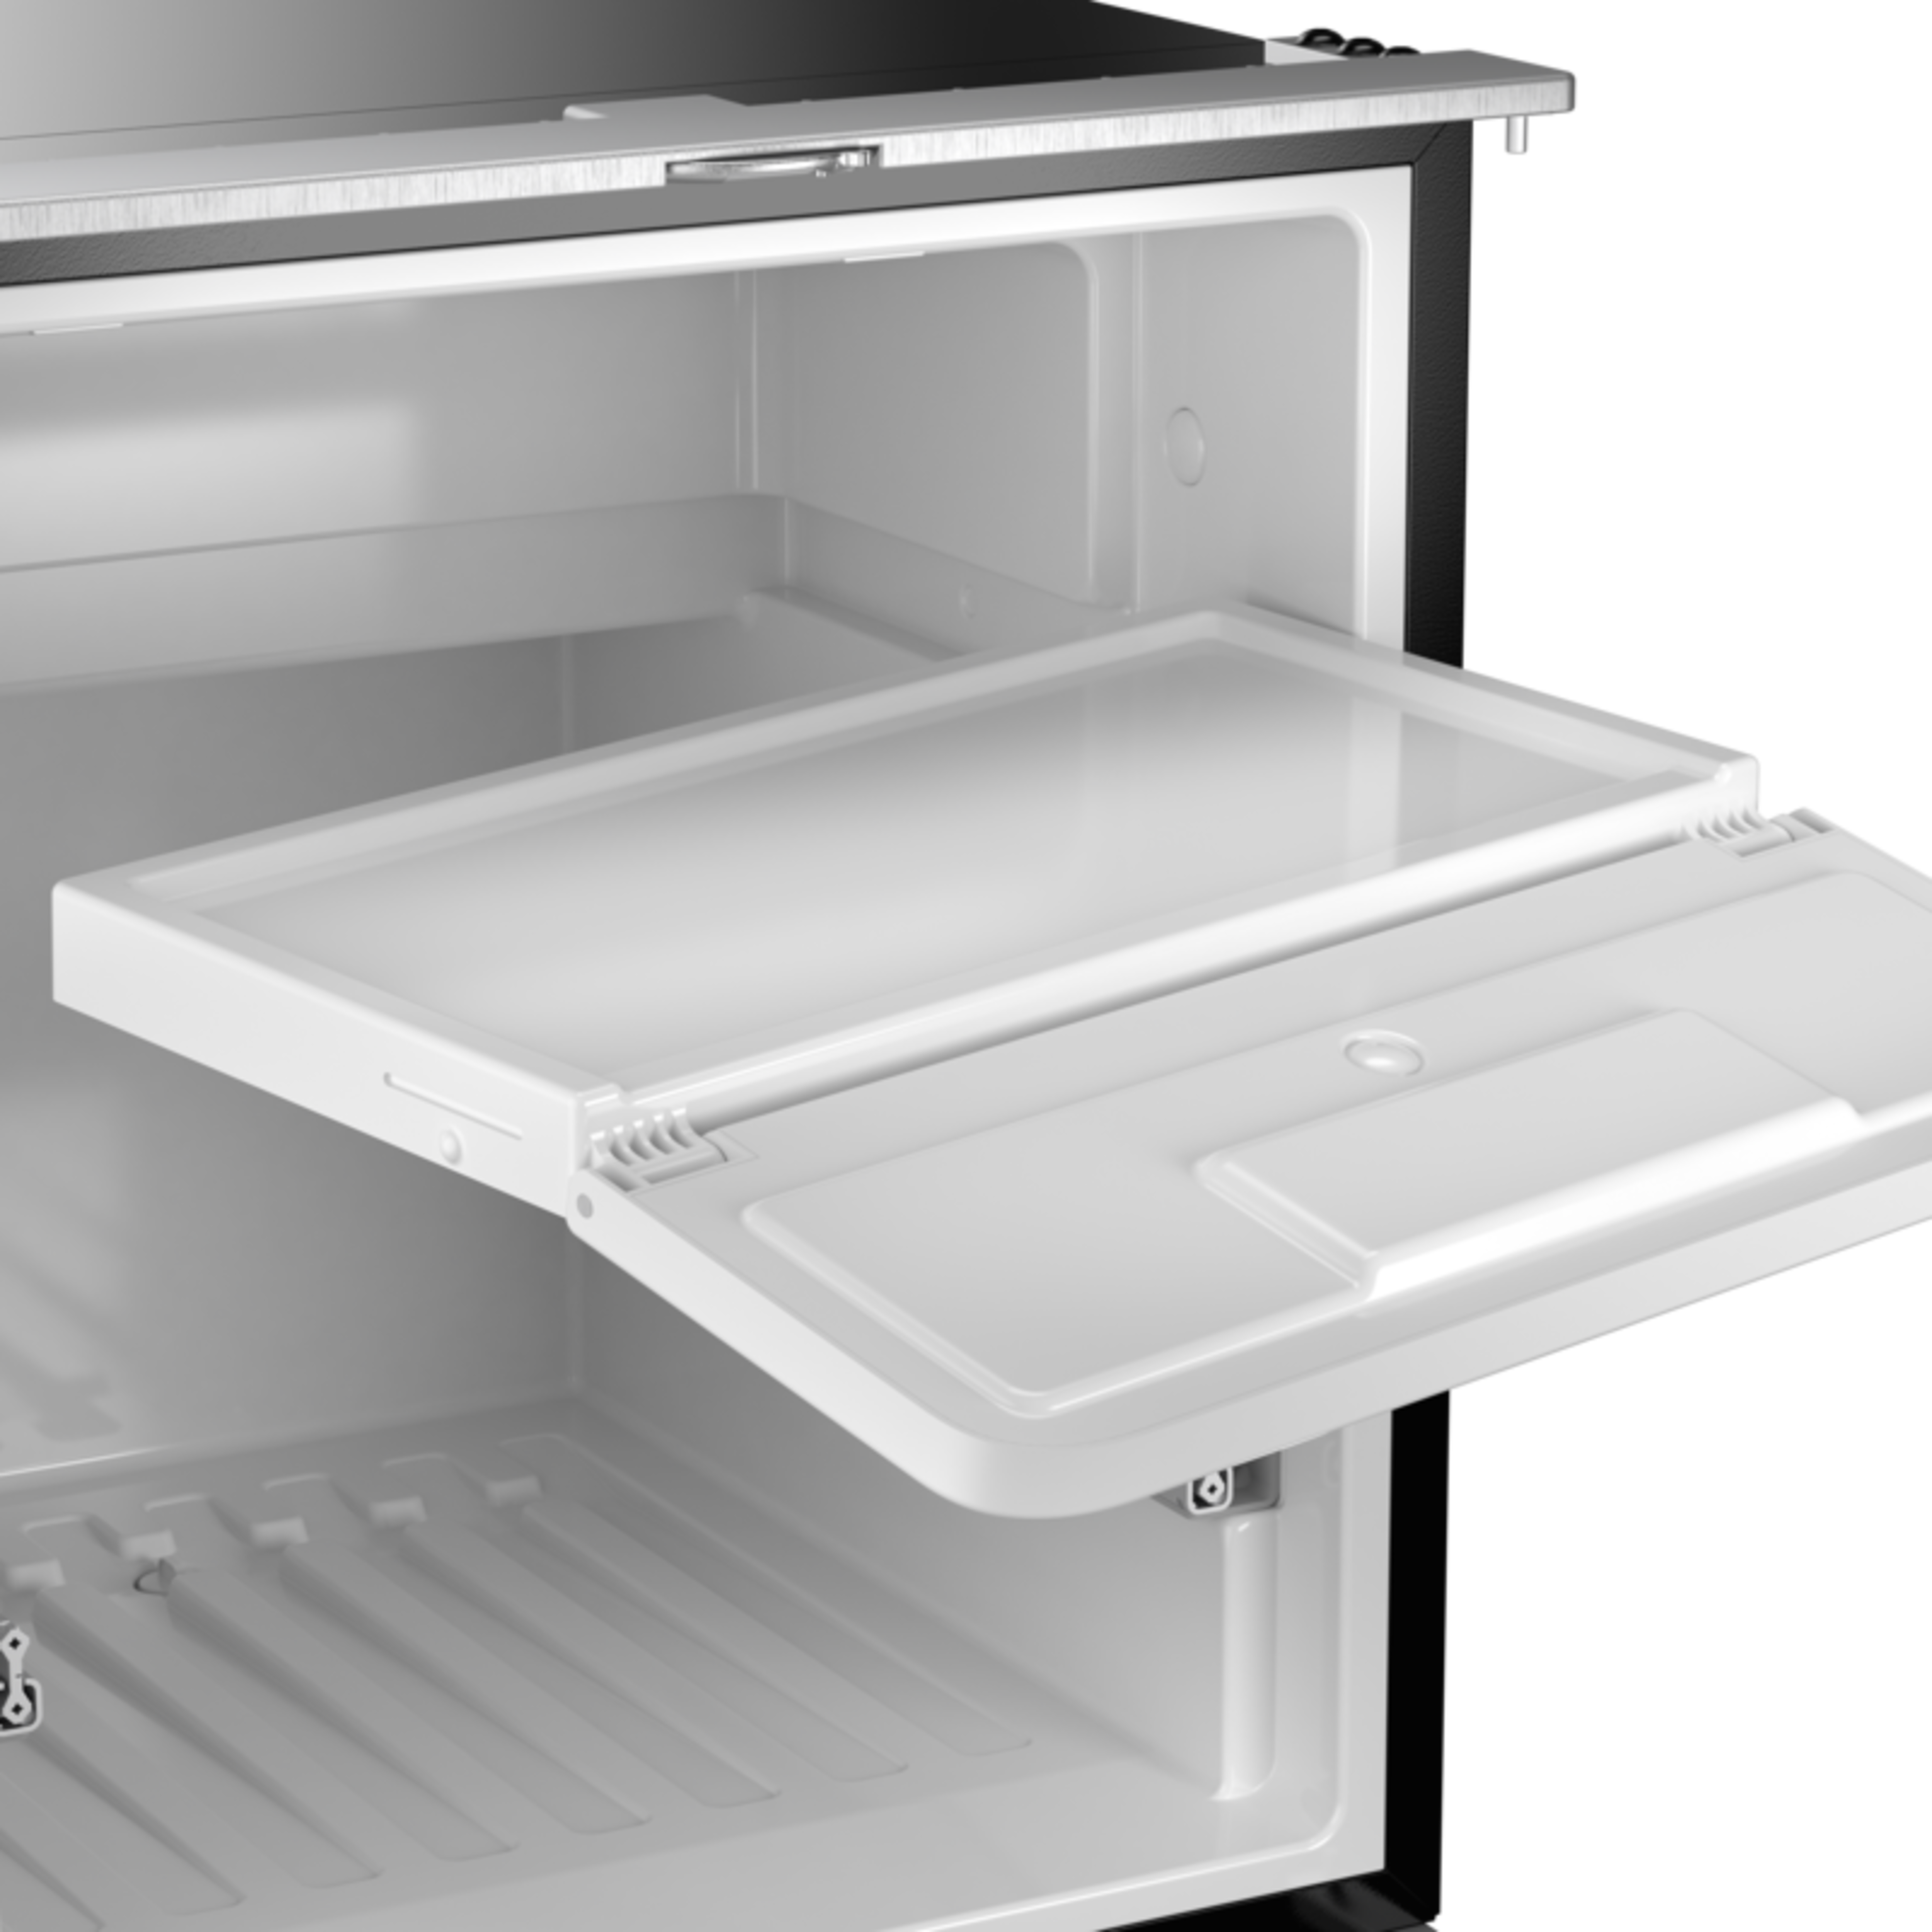 Drawer fridge & freezer